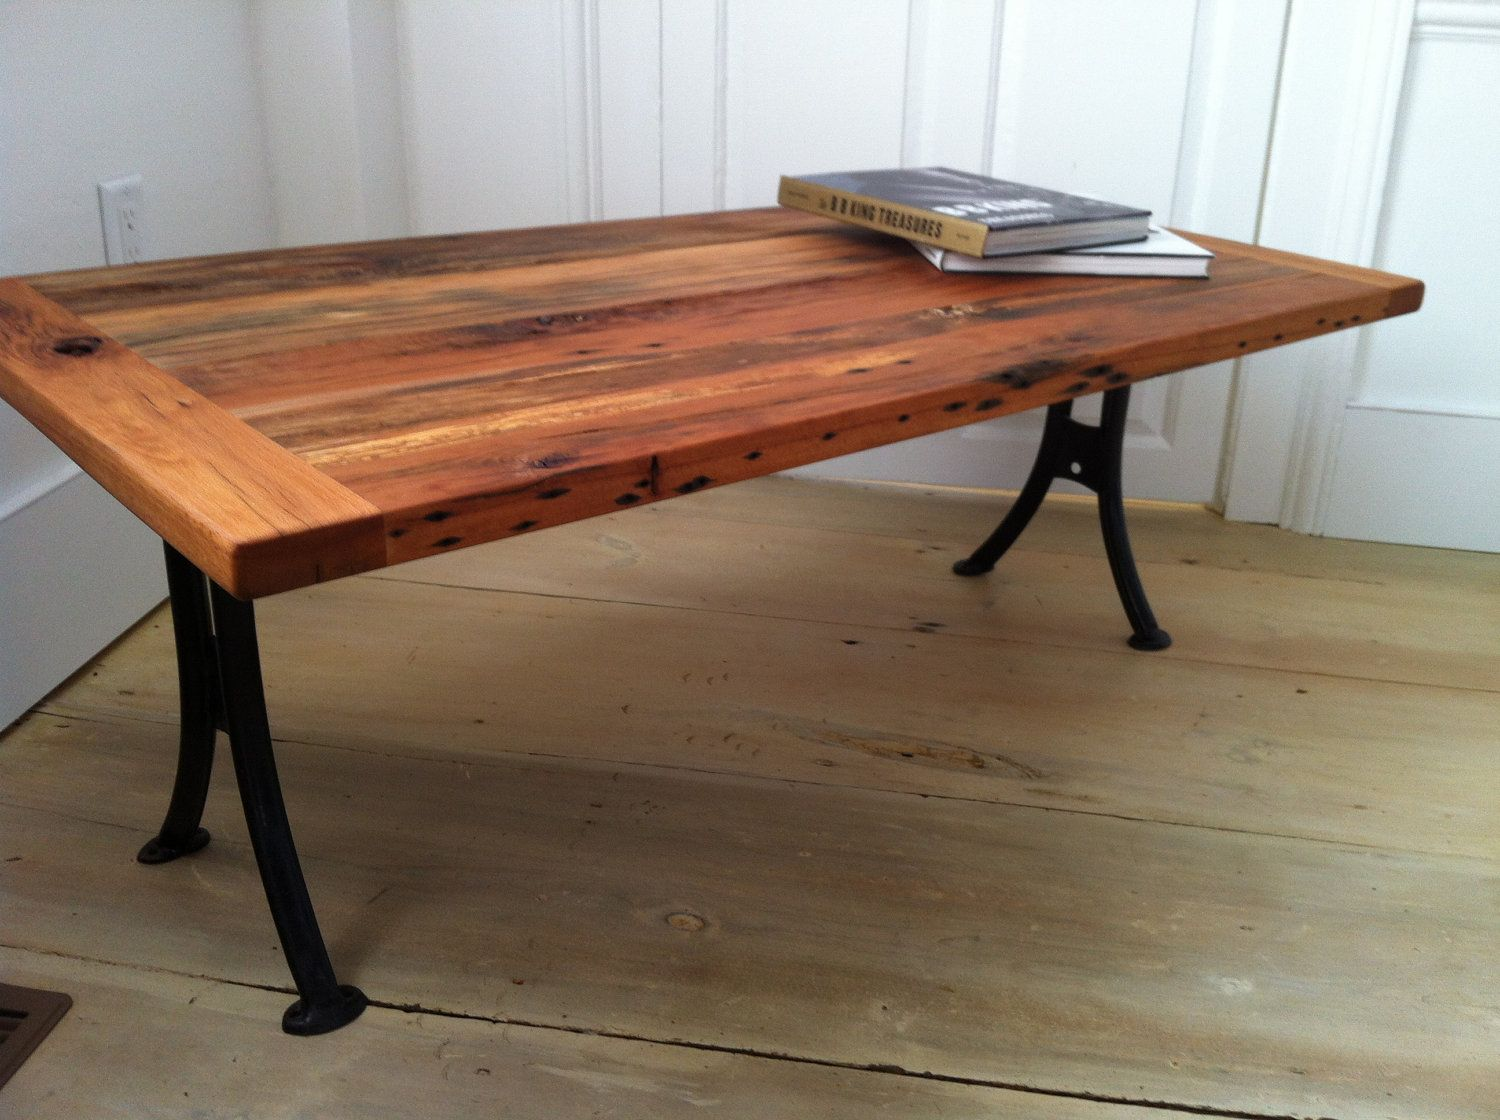 Metal Leg Desk Reclaimed Barnwood Coffee Table With Quotantique School Desk